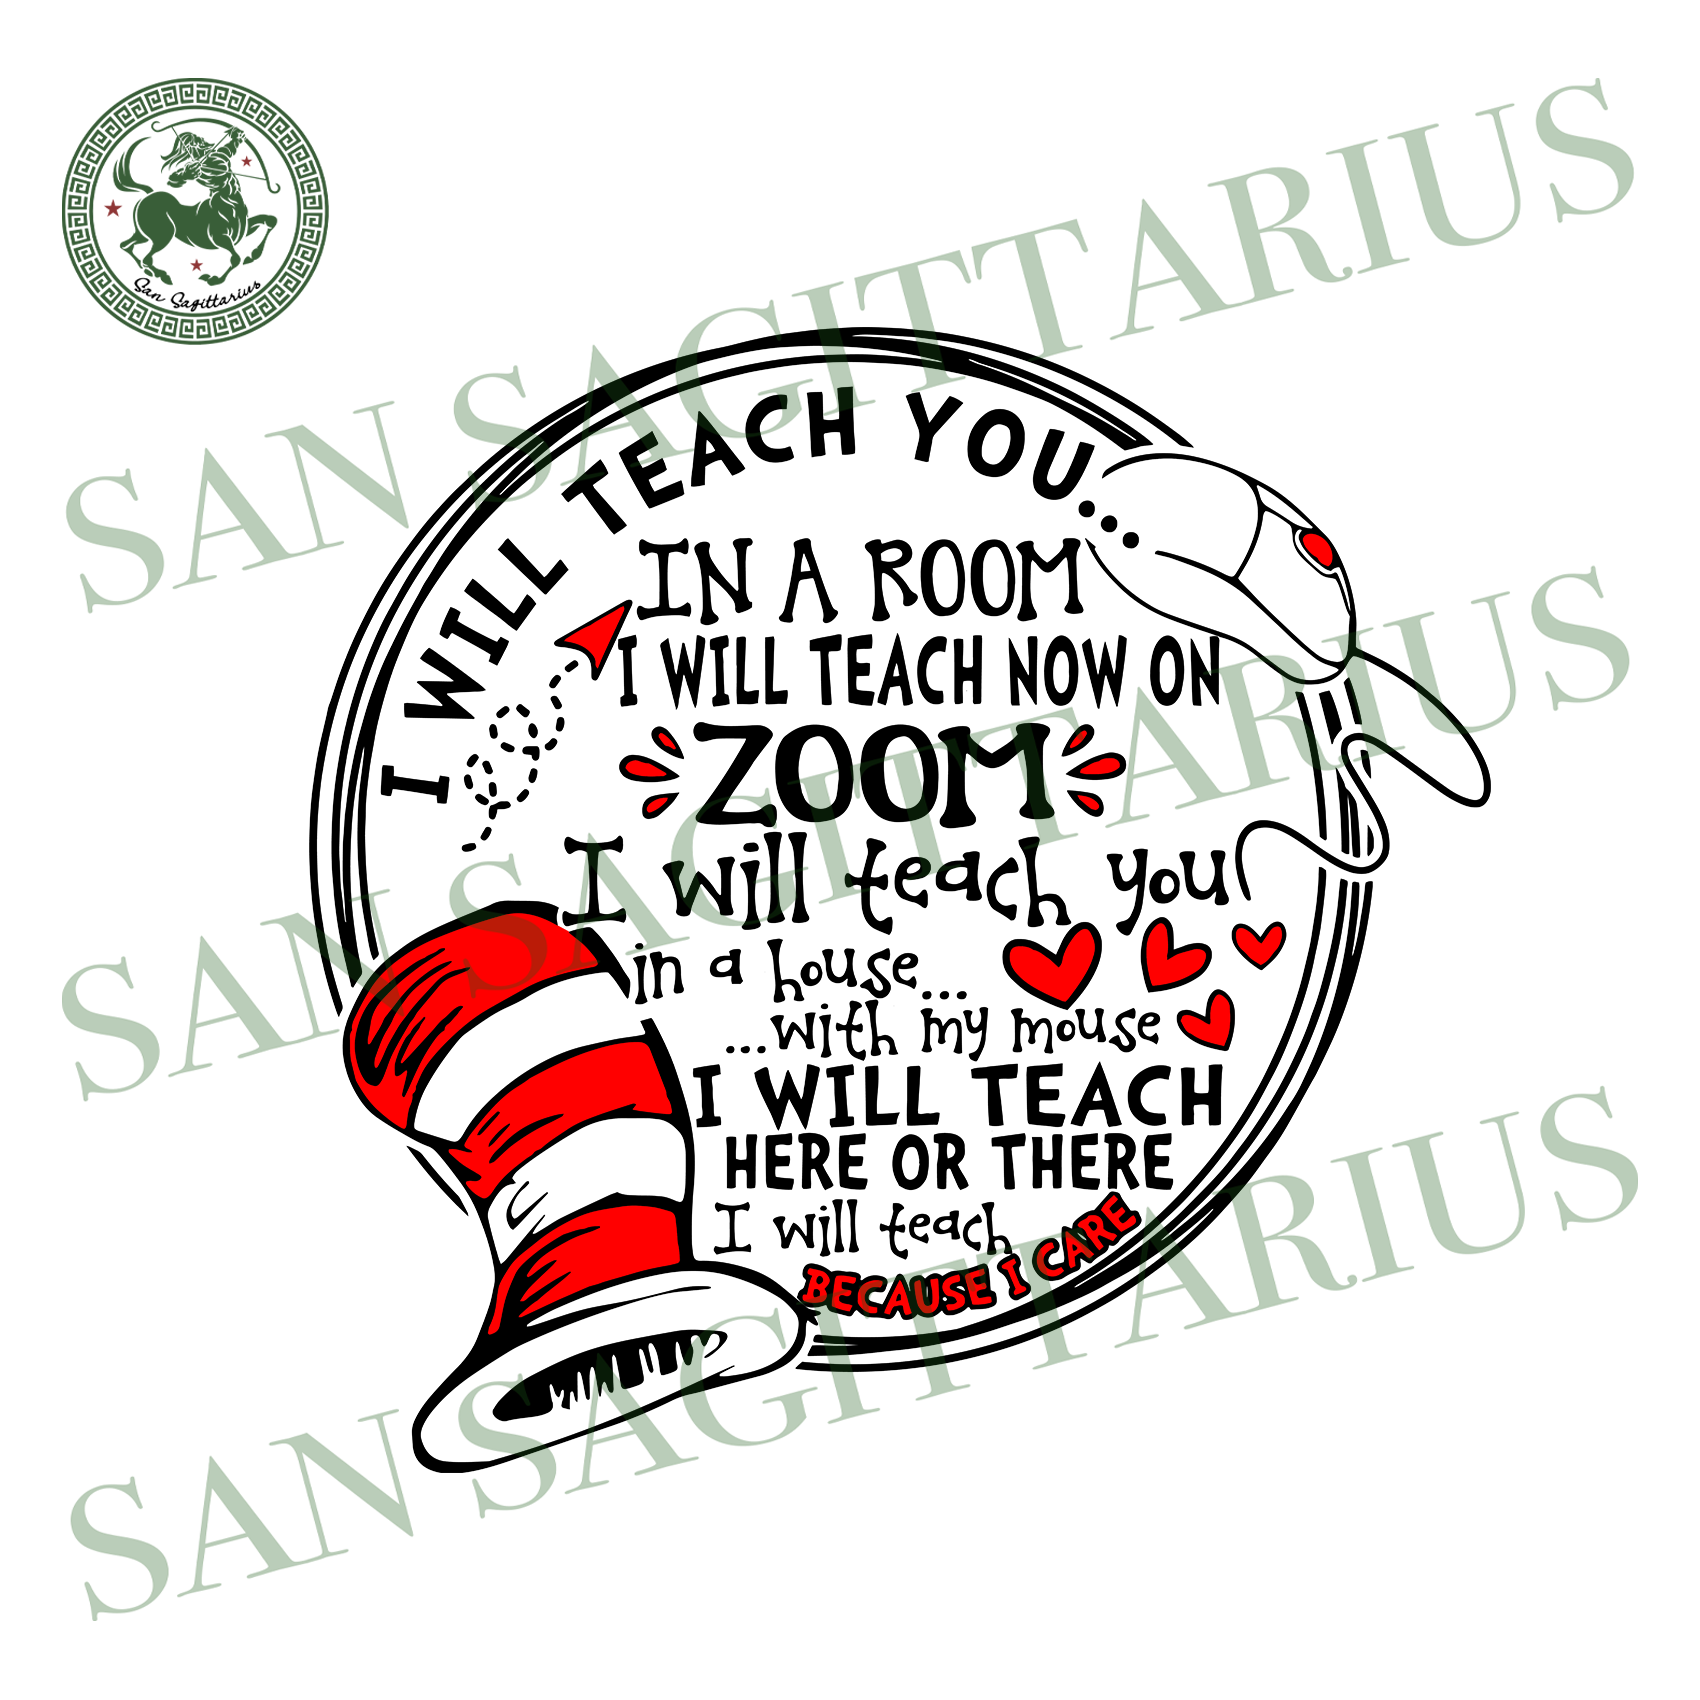 I will teach you in a room svg,svg,i will teach you svg,here on there svg,Dr Seuss teacher svg,svg cricut, silhouette svg files, cricut svg, silhouette svg, svg designs, vinyl svg